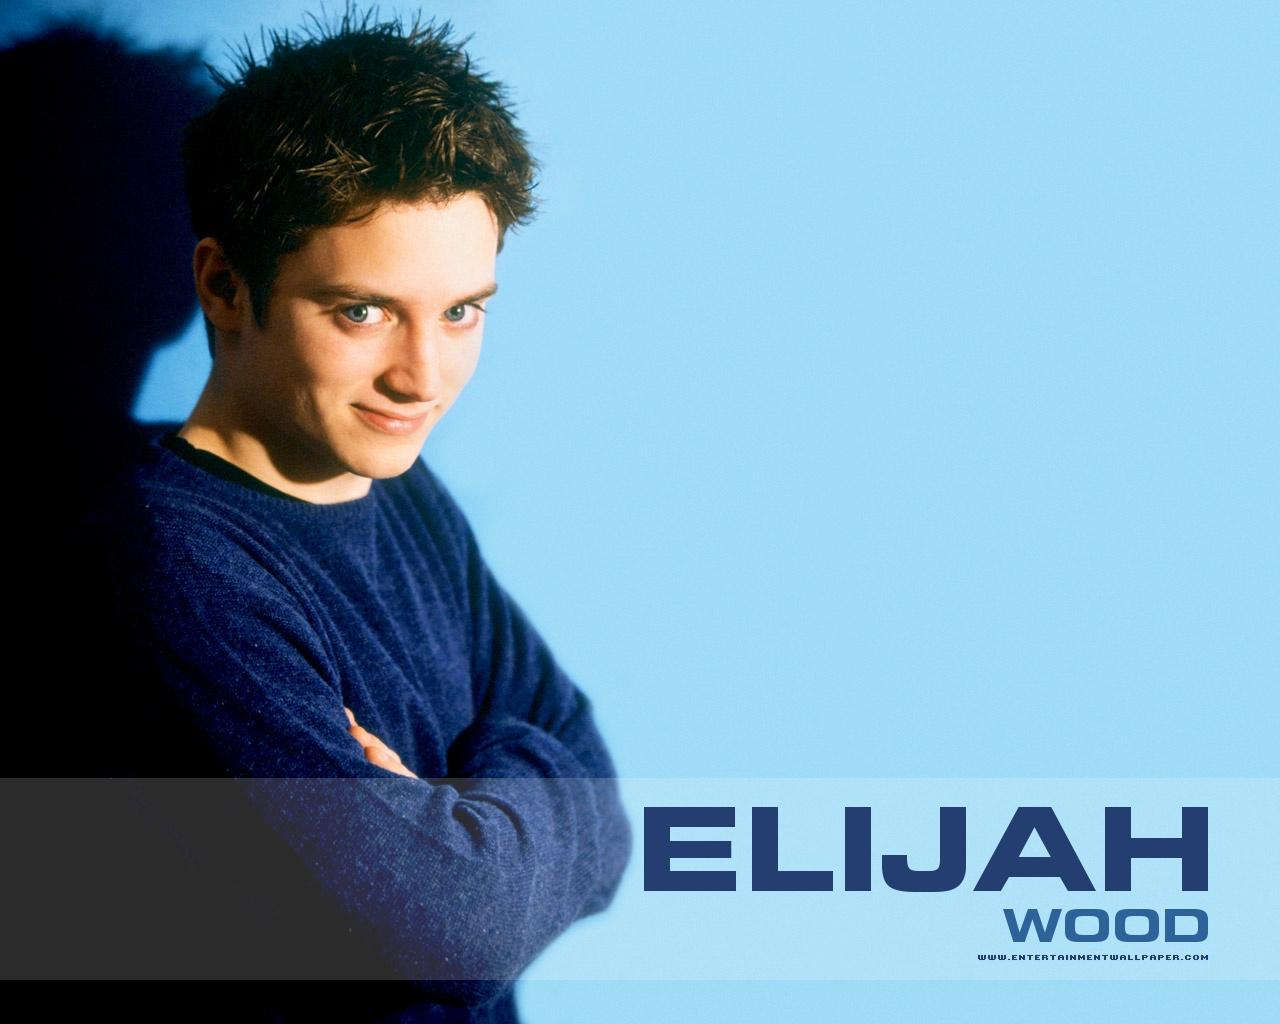 Elijah Wood Wallpapers Image Group